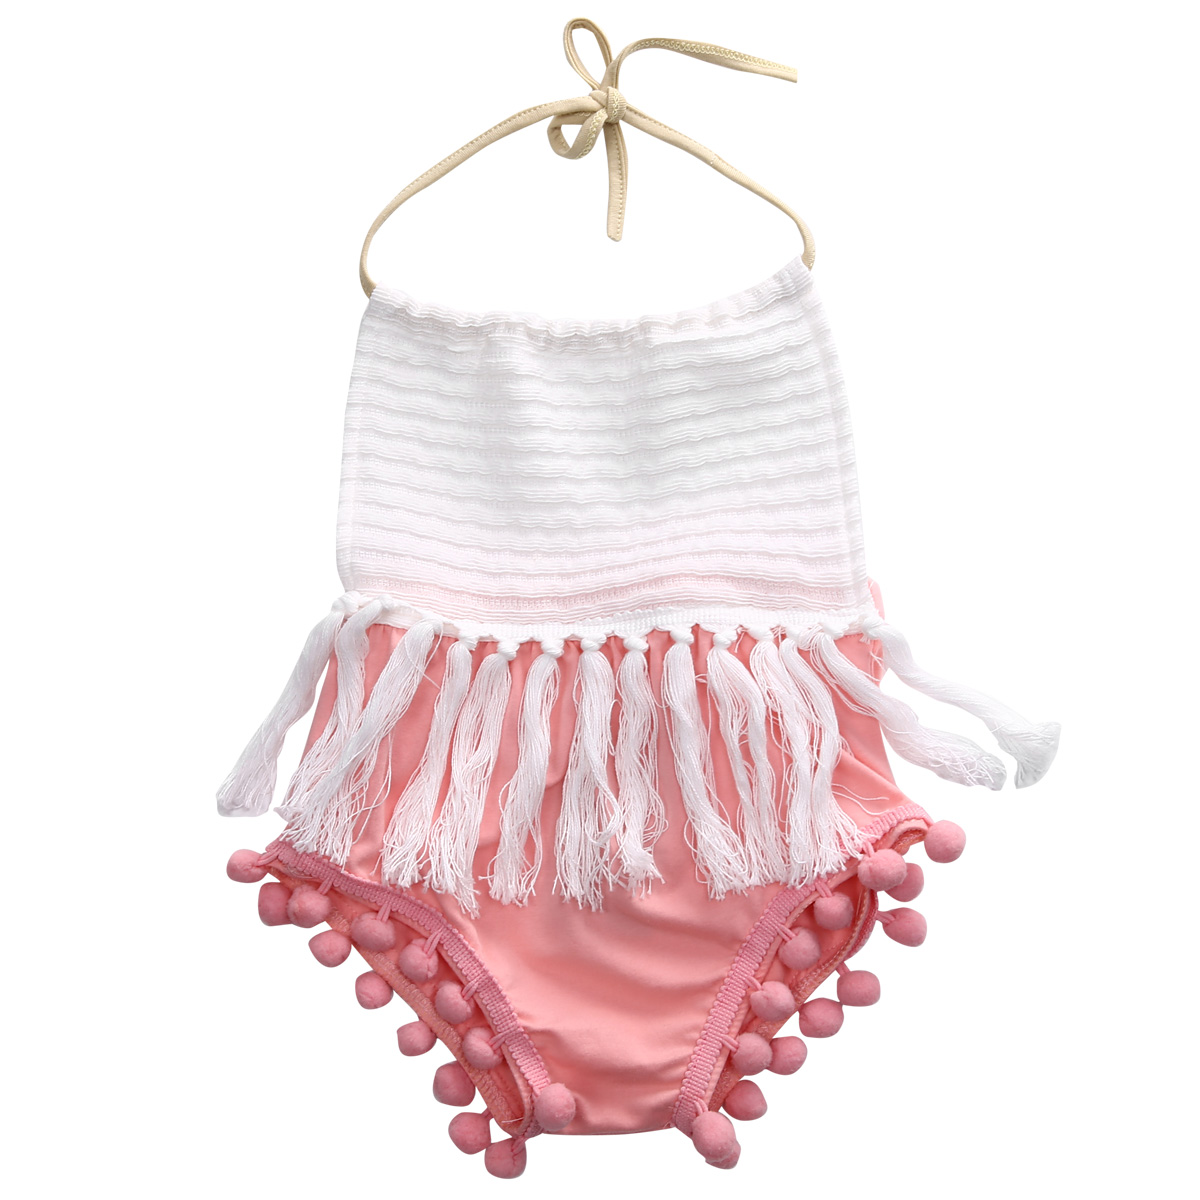 Summer Cute Baby Halter Tassel Bodsuit Newborn Infant Baby Girls Bodysuit Tassels Jumpsuit Outfits Sunsuit Cute Kid Clothing